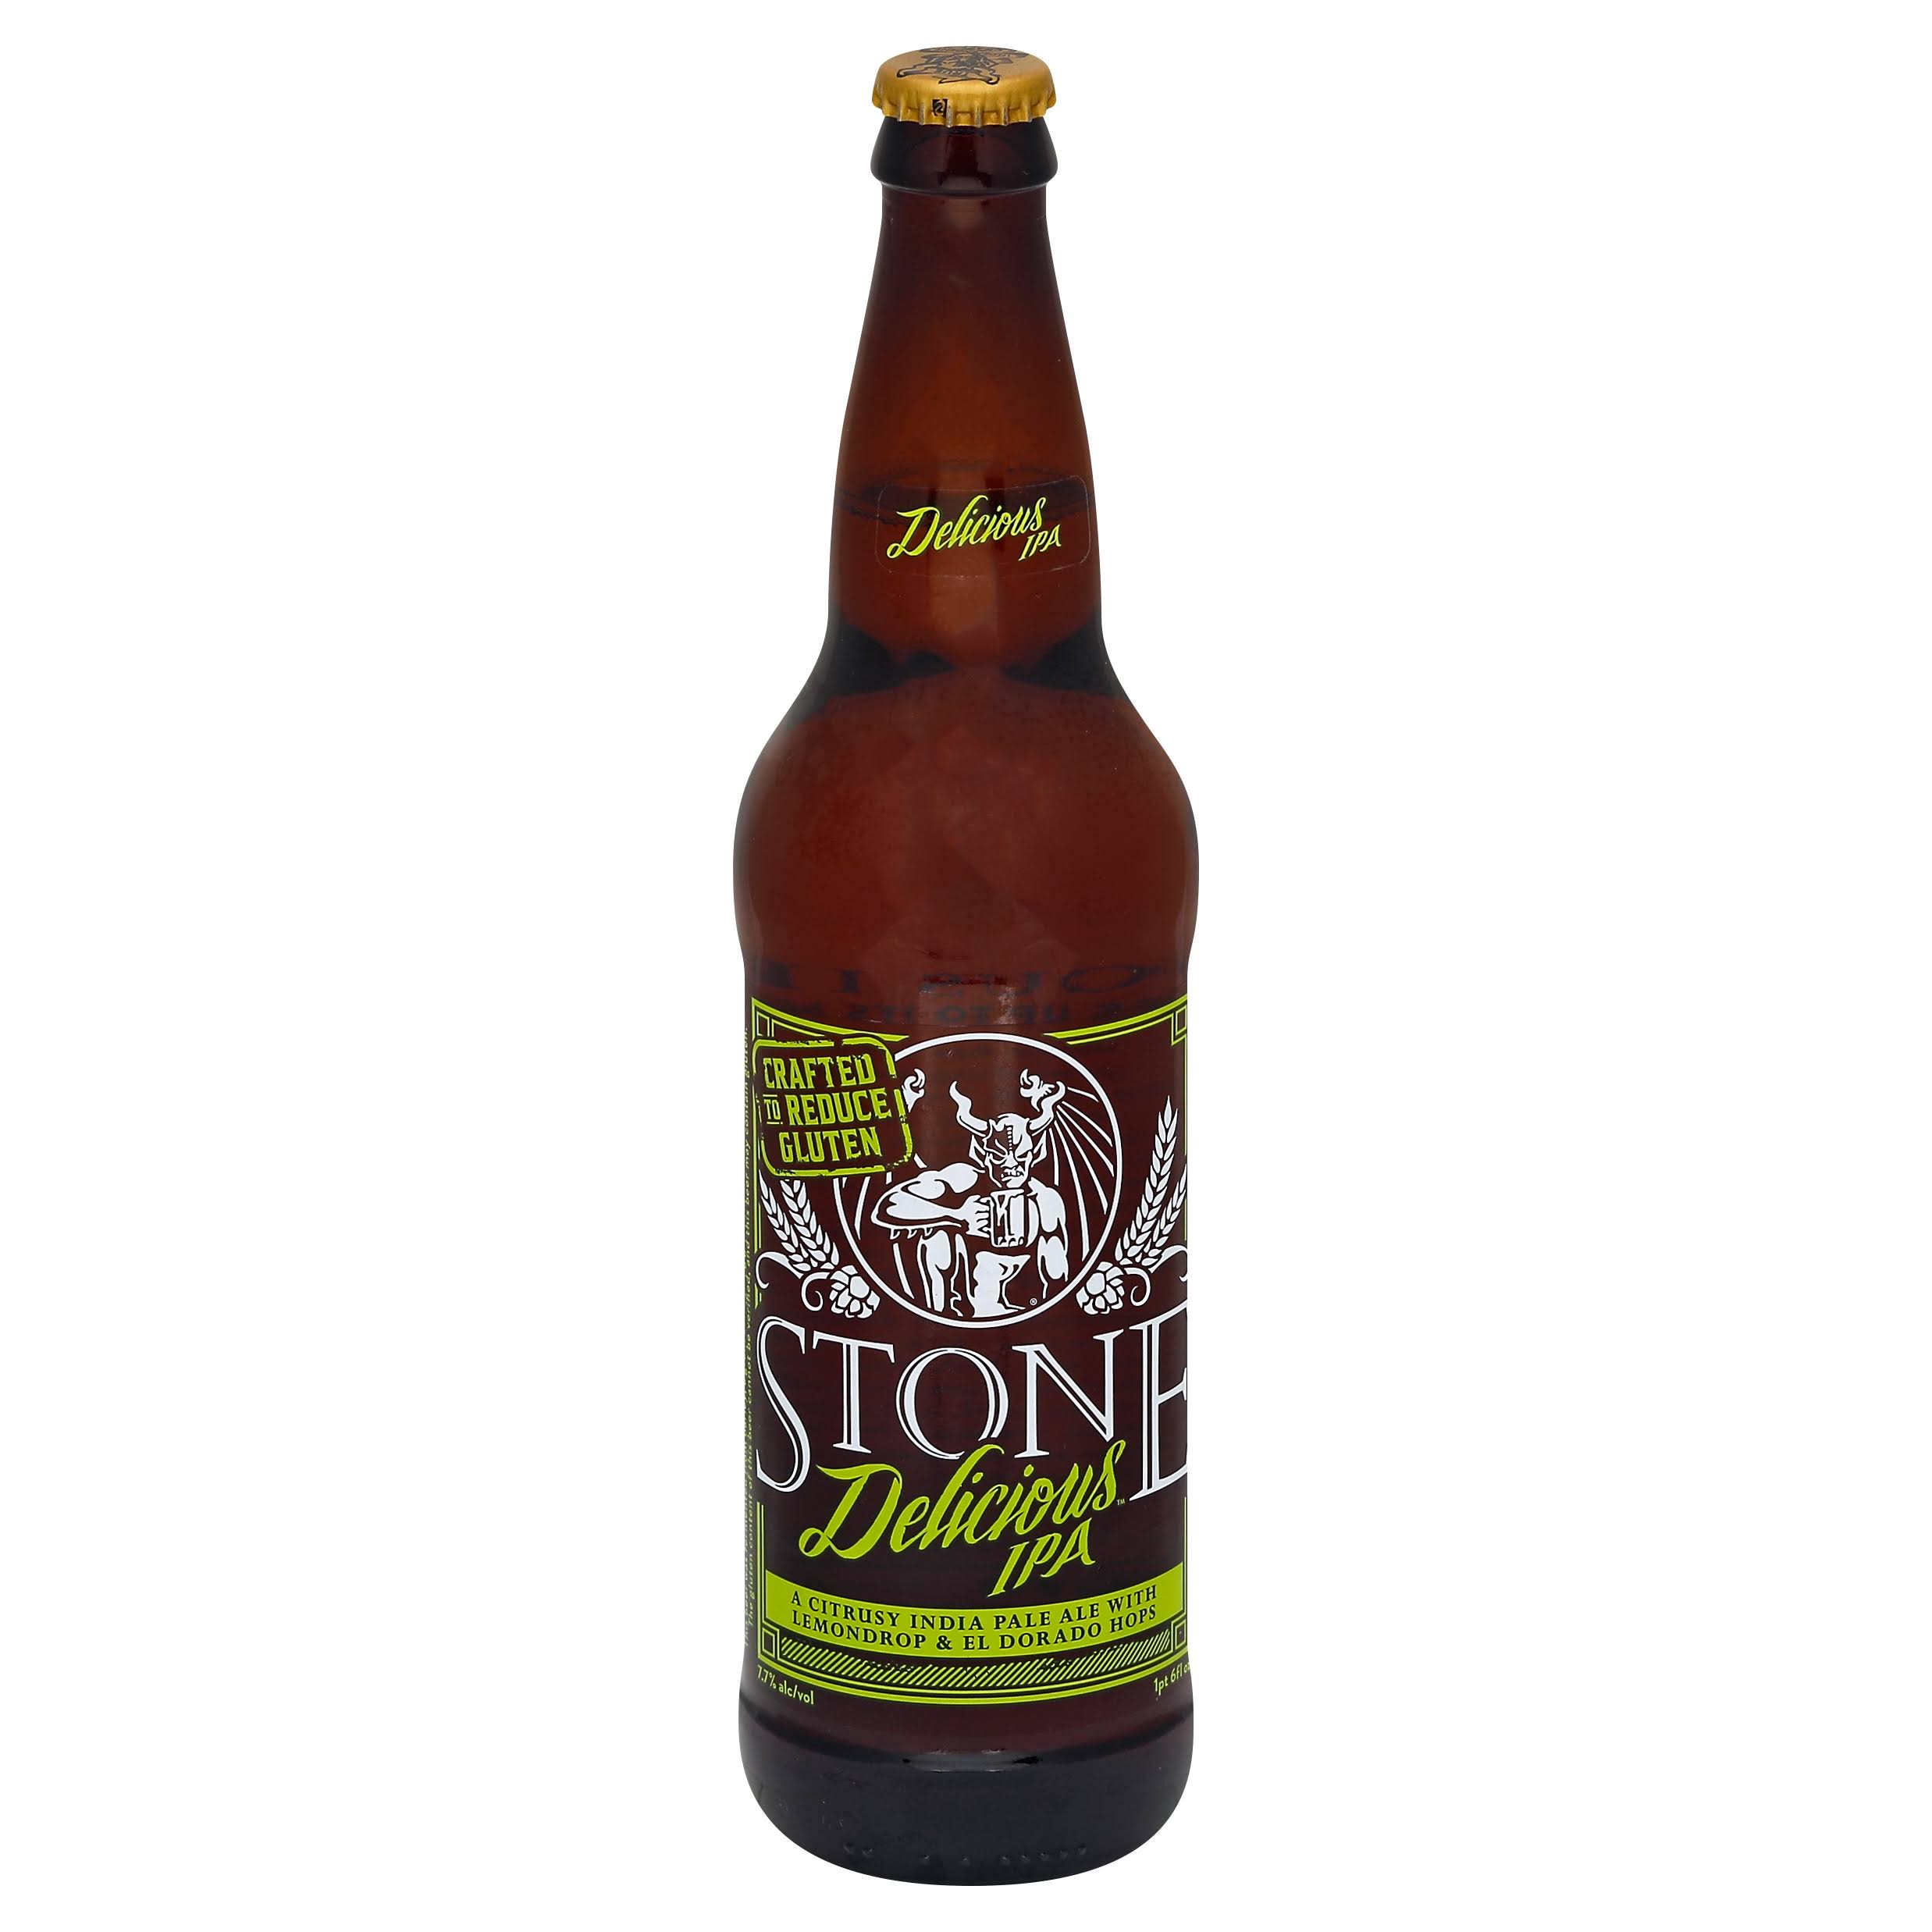 Stone Delicious IPA - 22 fl oz bottle